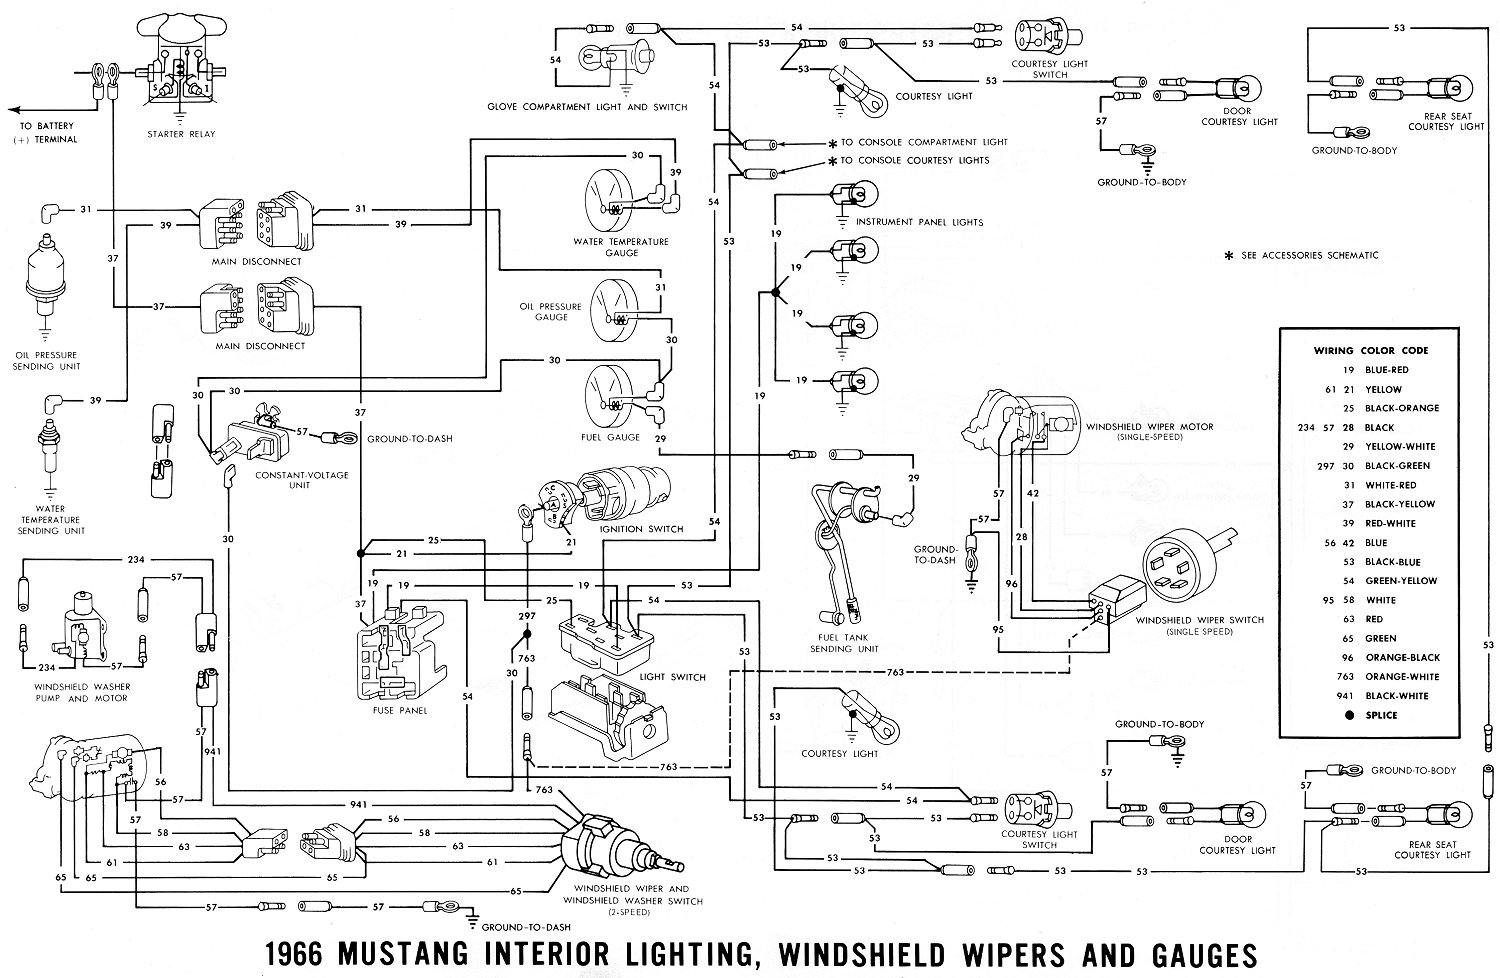 1966 mustang wiring diagrams average joe restoration rh averagejoerestoration com 1967 Ford Wiring Diagram 1967 Ford Wiring Diagram